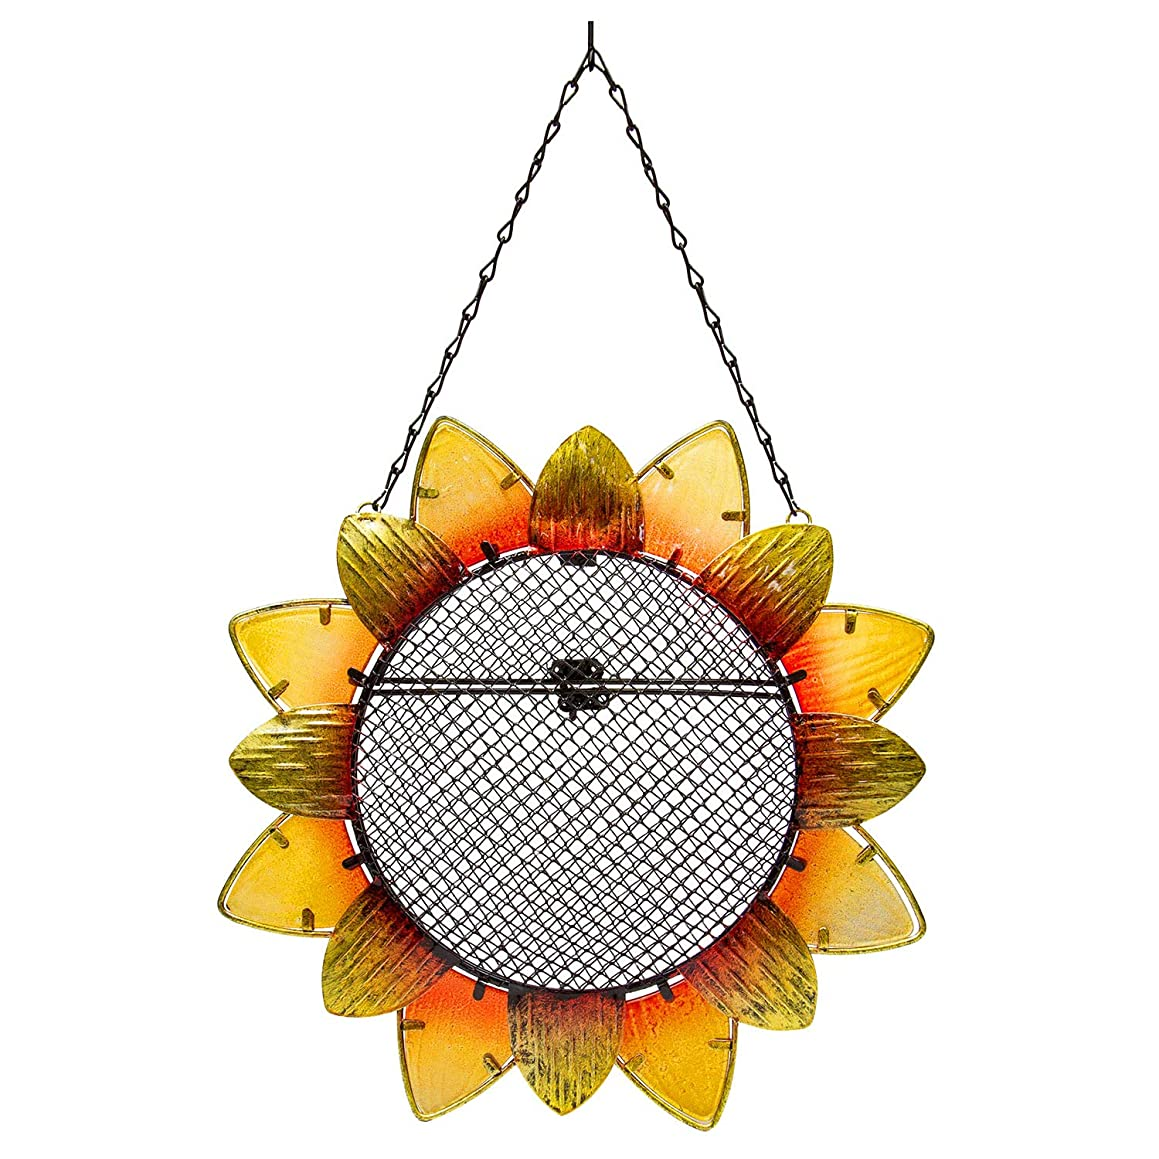 "Evergreen Garden Sunflower Metal and Glass Hanging Mesh Bird Feeder - 12.5""W x 3"